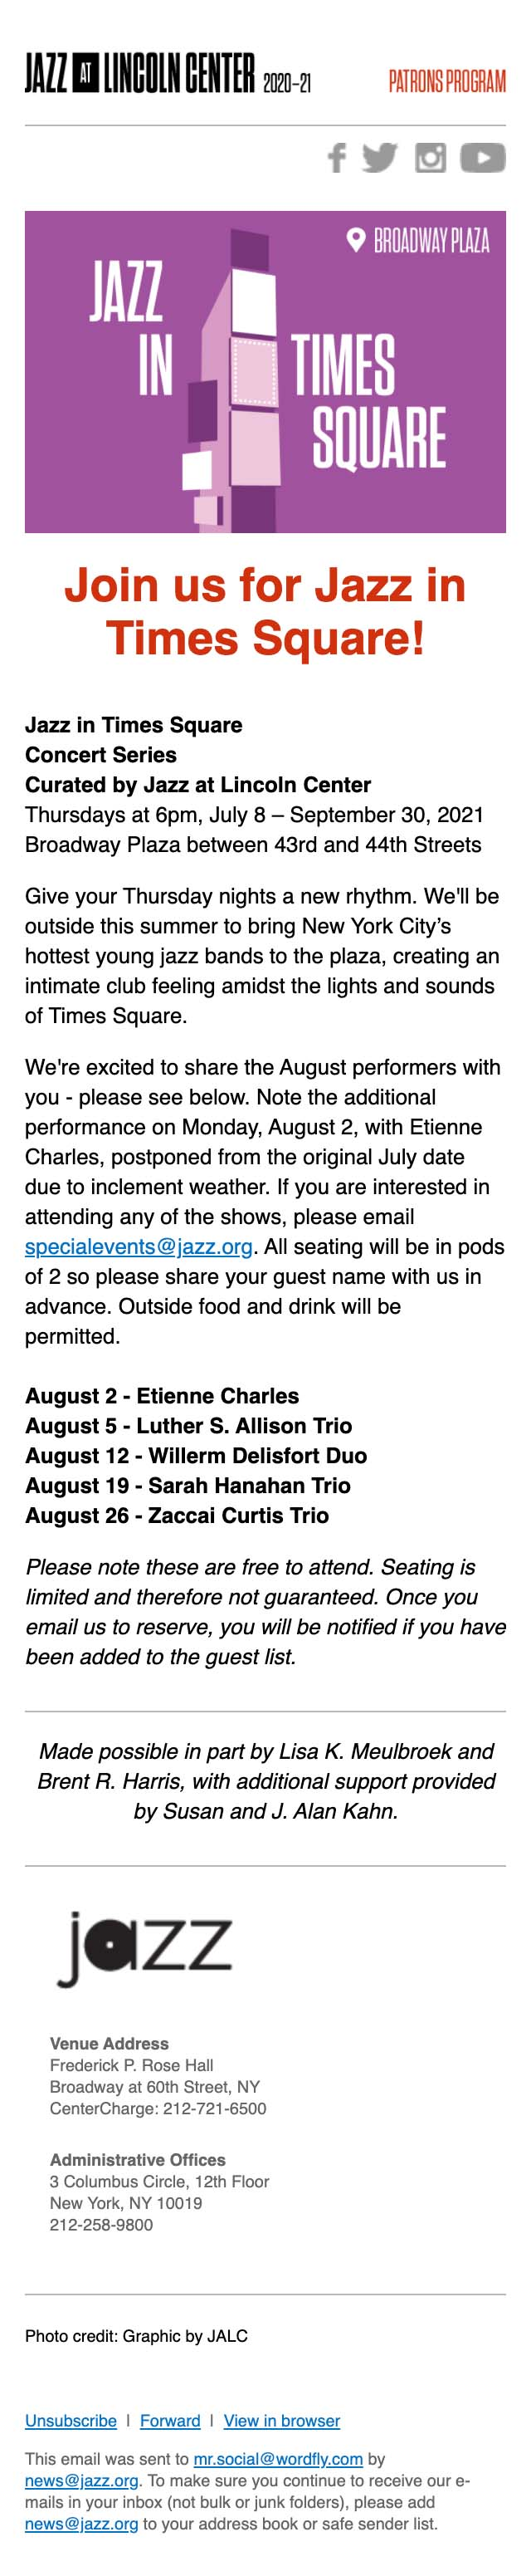 You're Invited to Jazz in Times Square in August! - mobile view